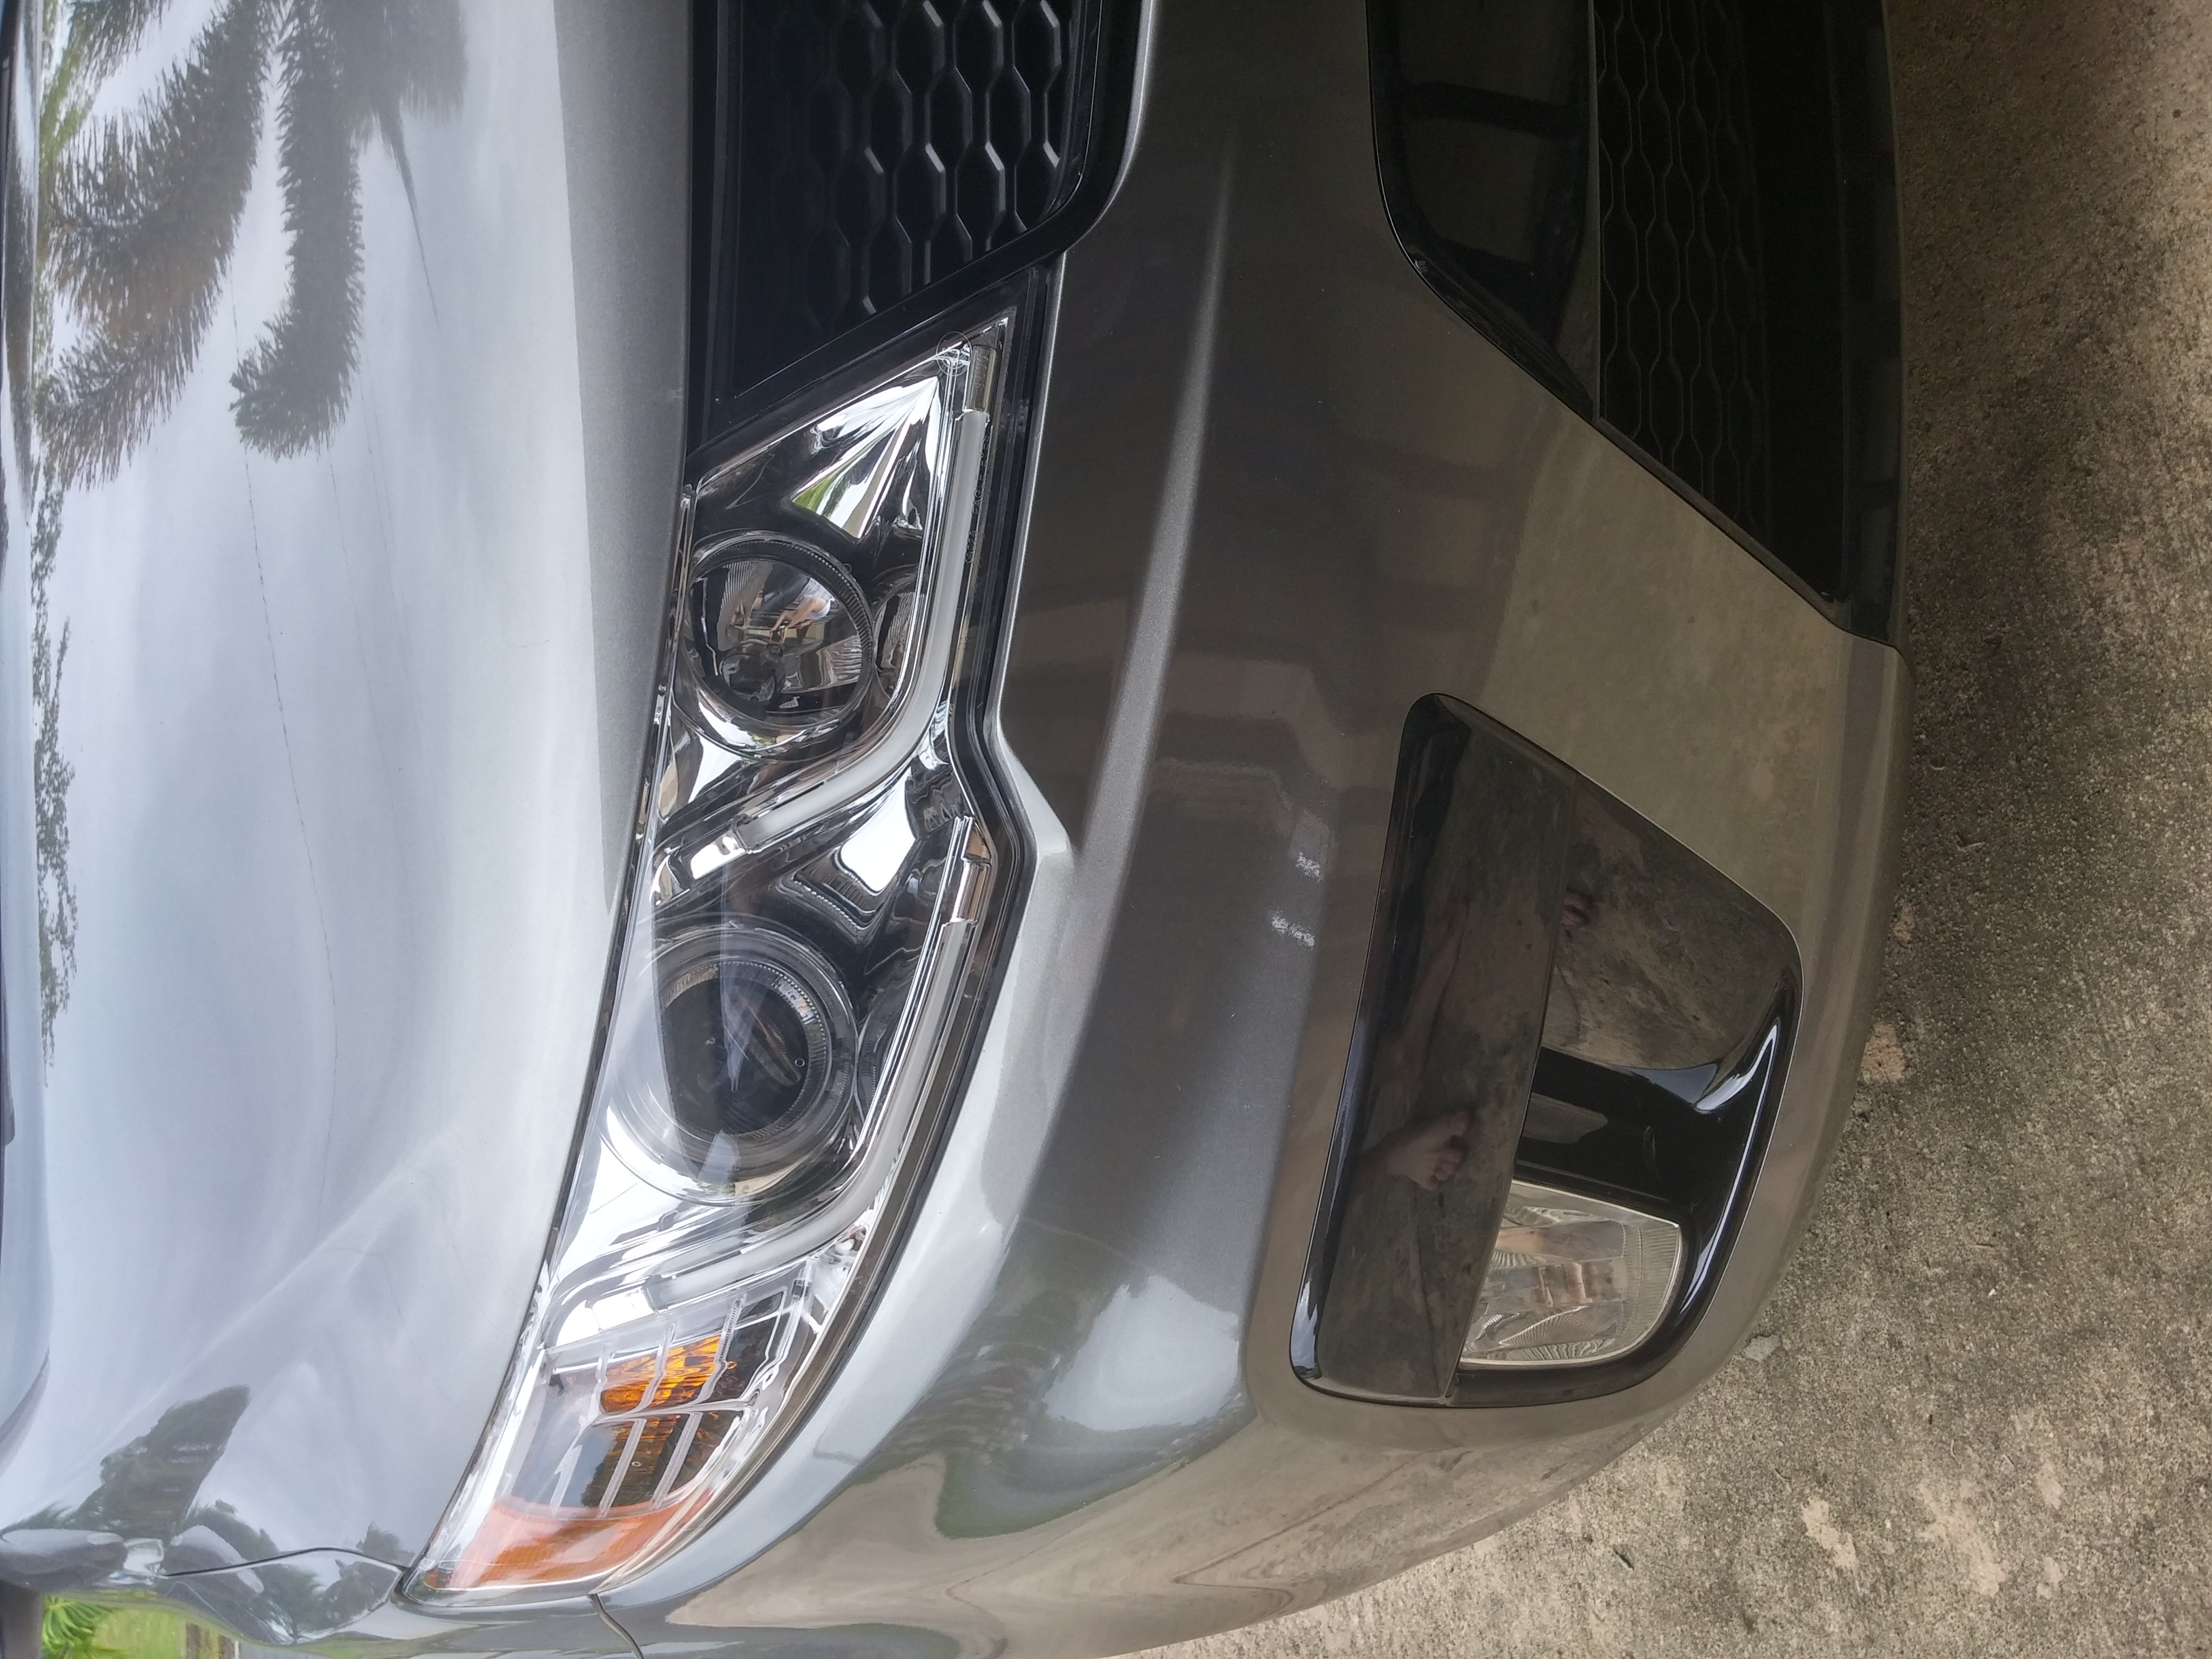 Is This Headlight Stock It A 2010 Kia Forte Koup Sx Bought Used And Im Slowly Looking At Some Different Stuff Ps Sorry For Turned Photo